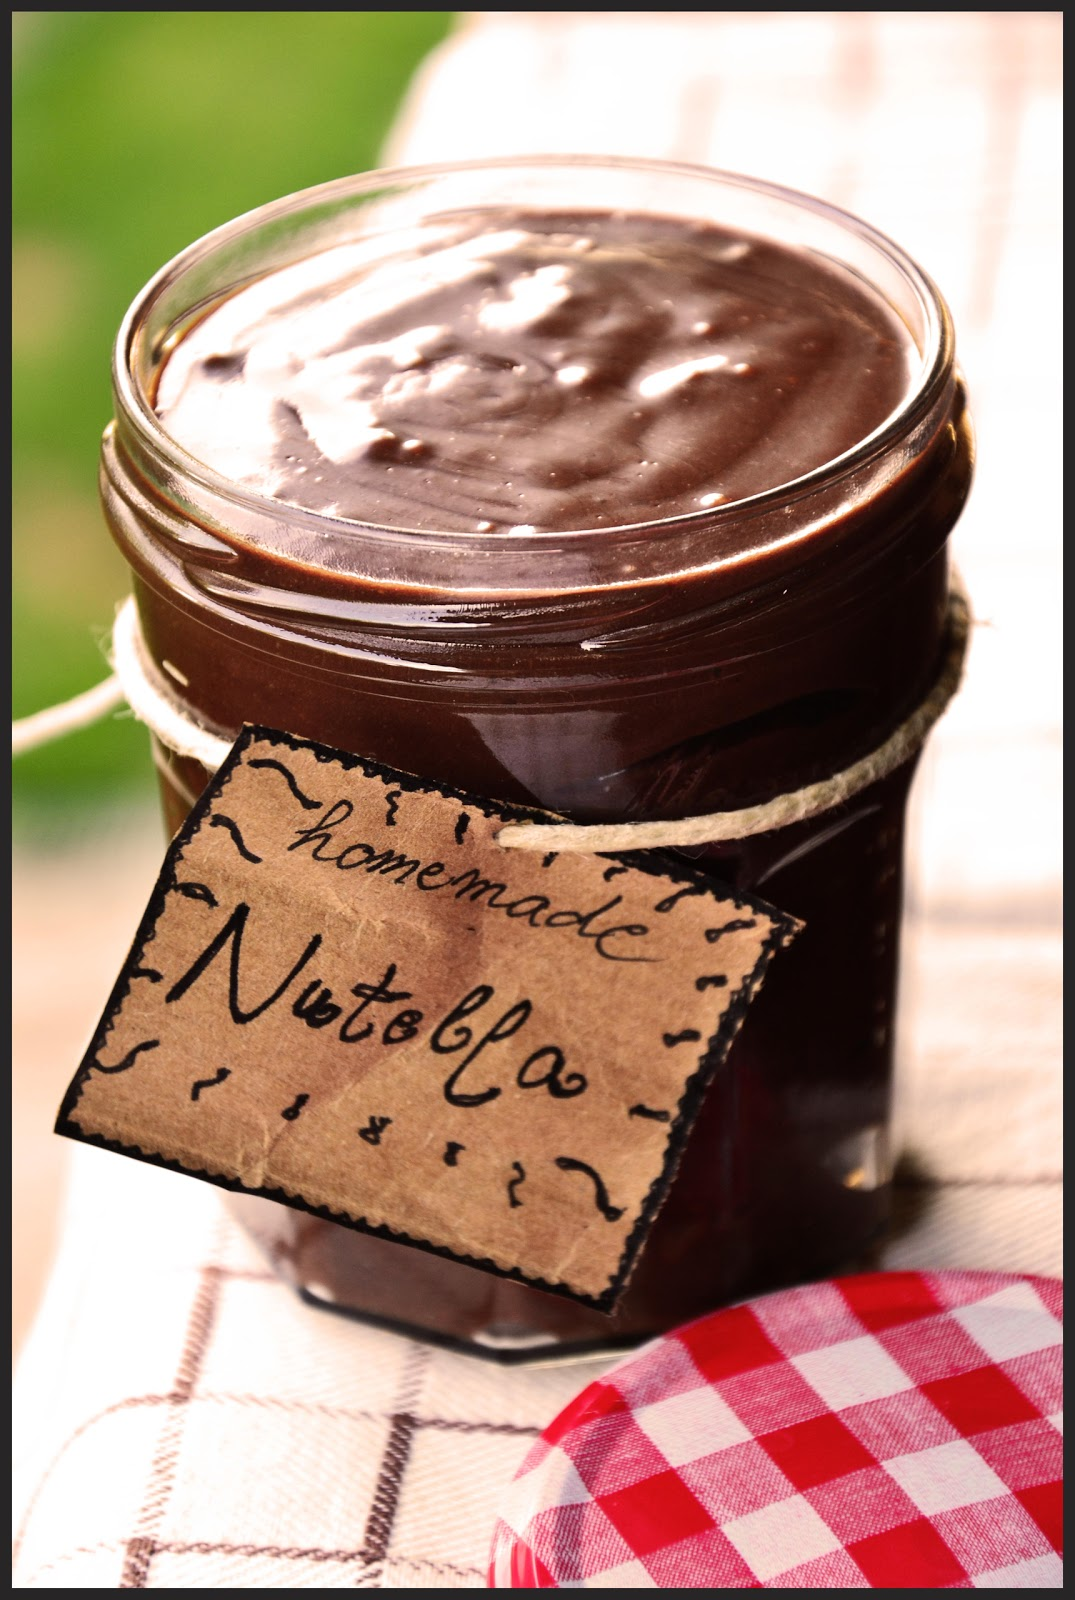 Save a bit of money and make some homemade nutella , The Eccentric Cook.